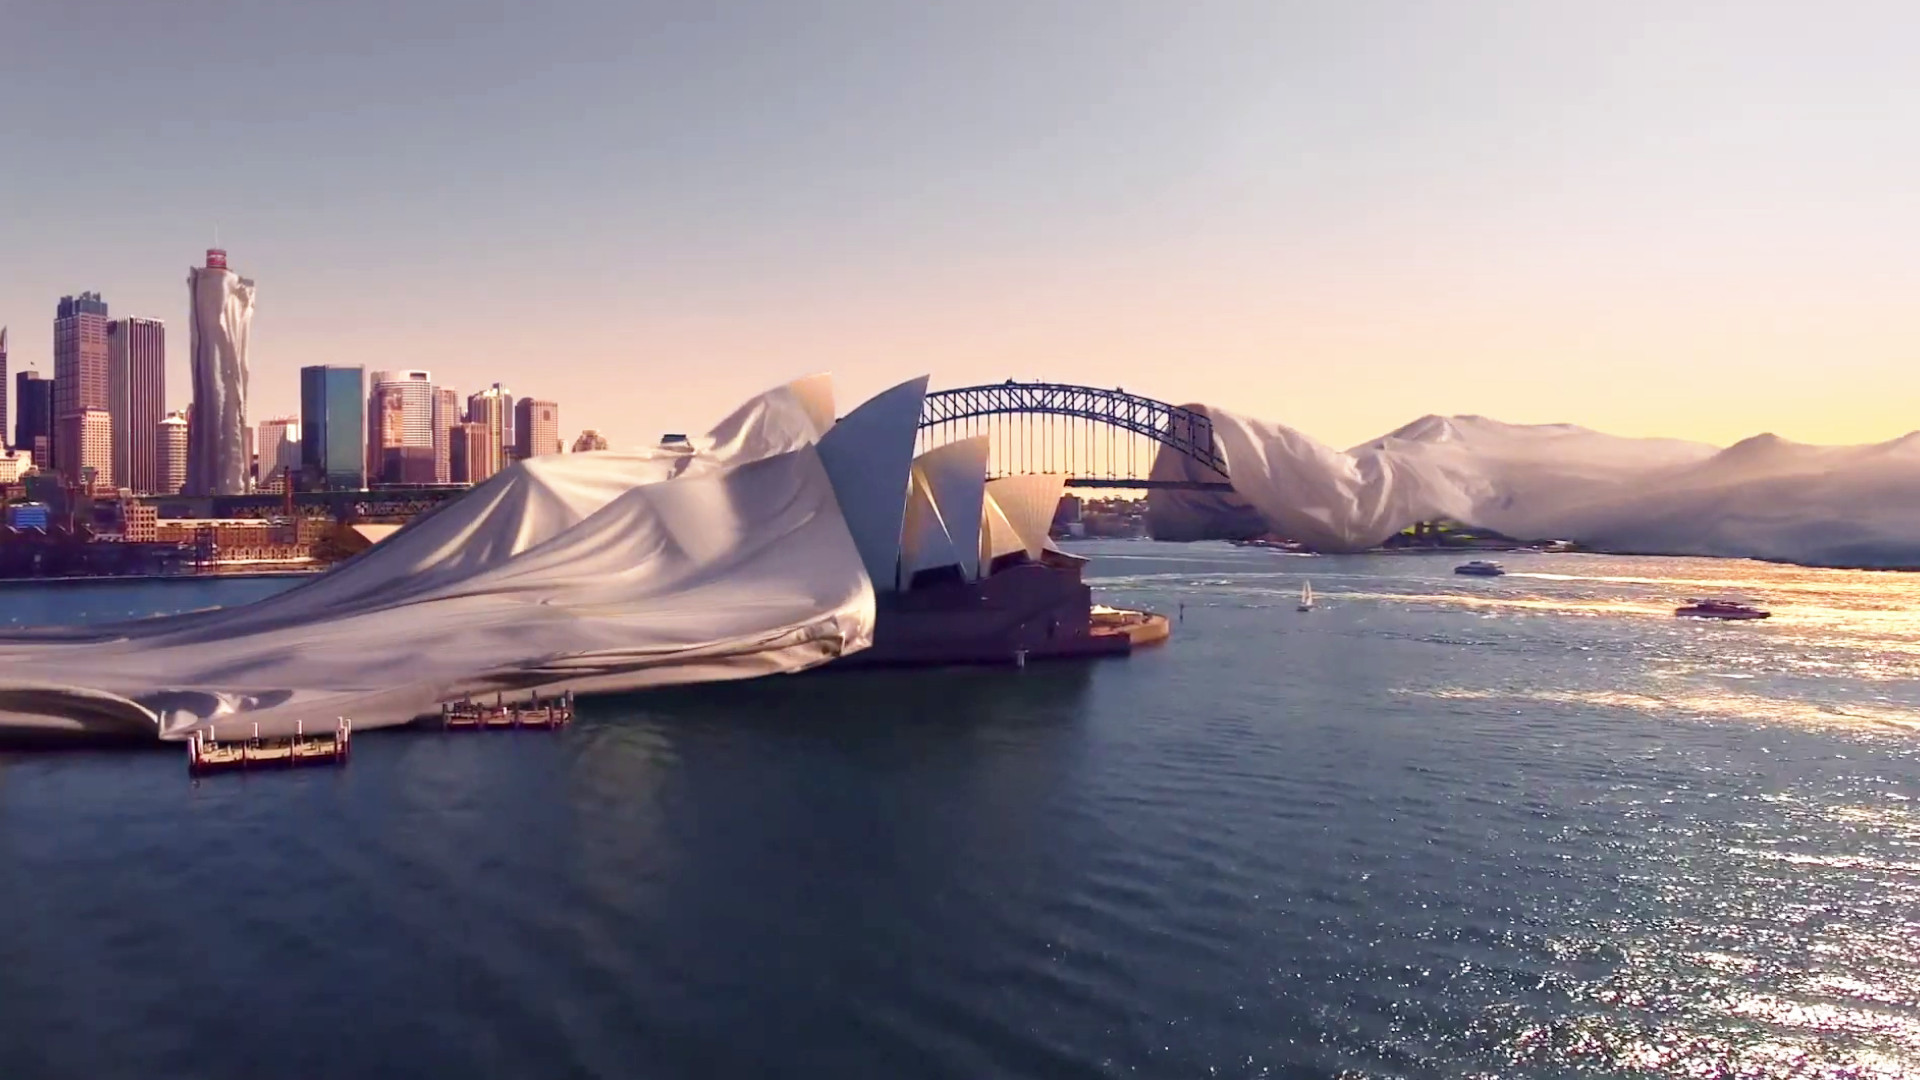 Unveils The World, Worldwide Hospitality Campaign by Accor